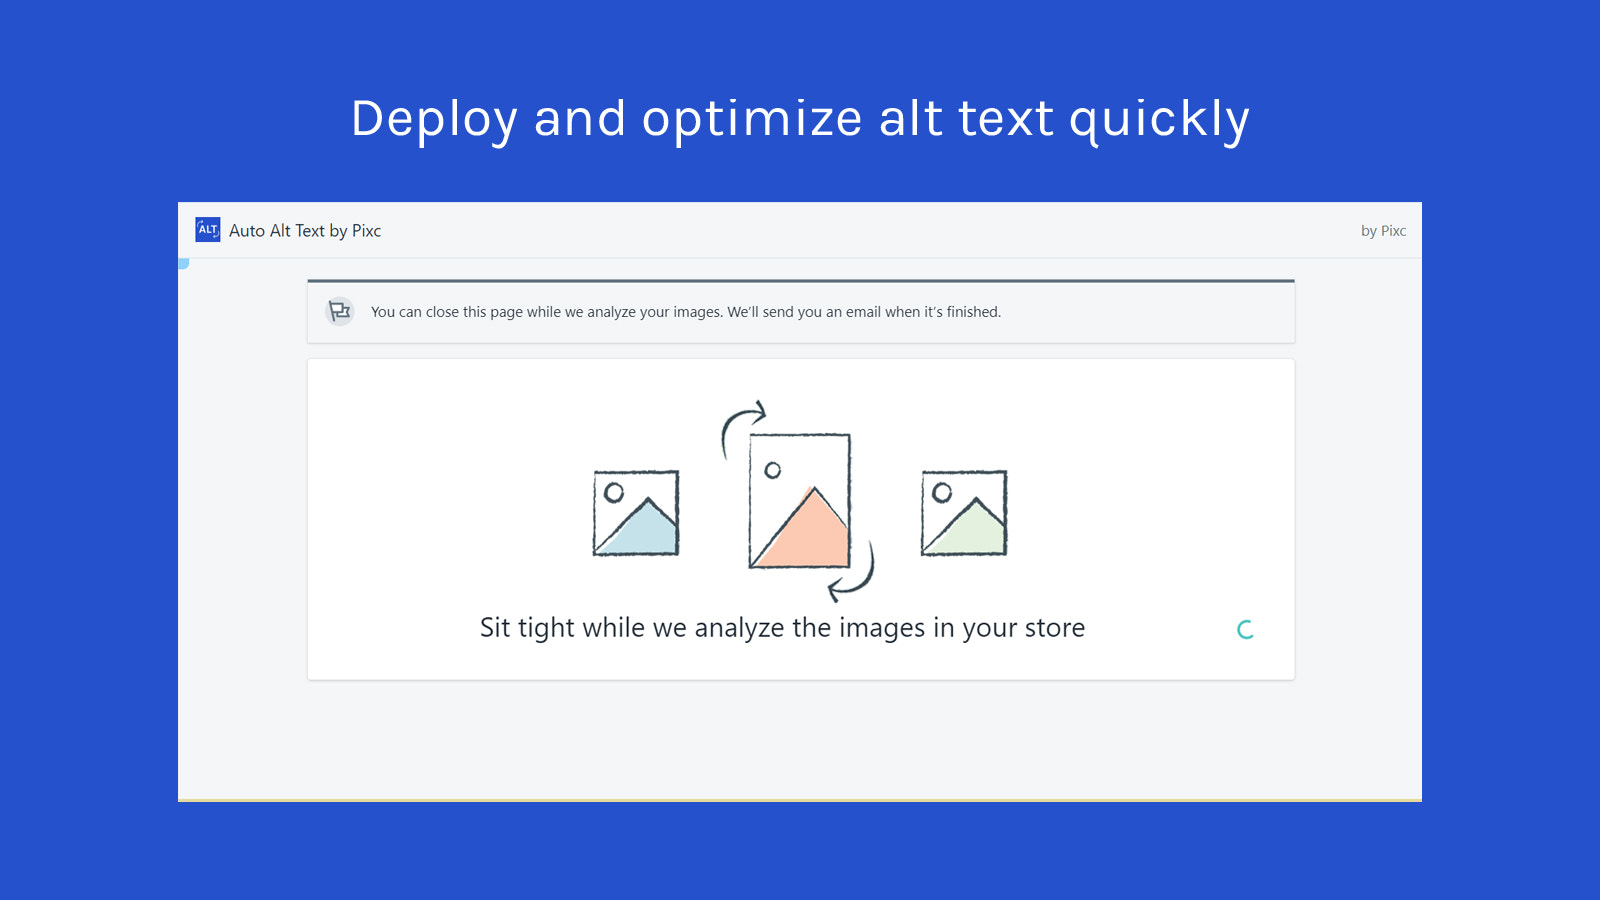 Deploy and optimize alt text quickly